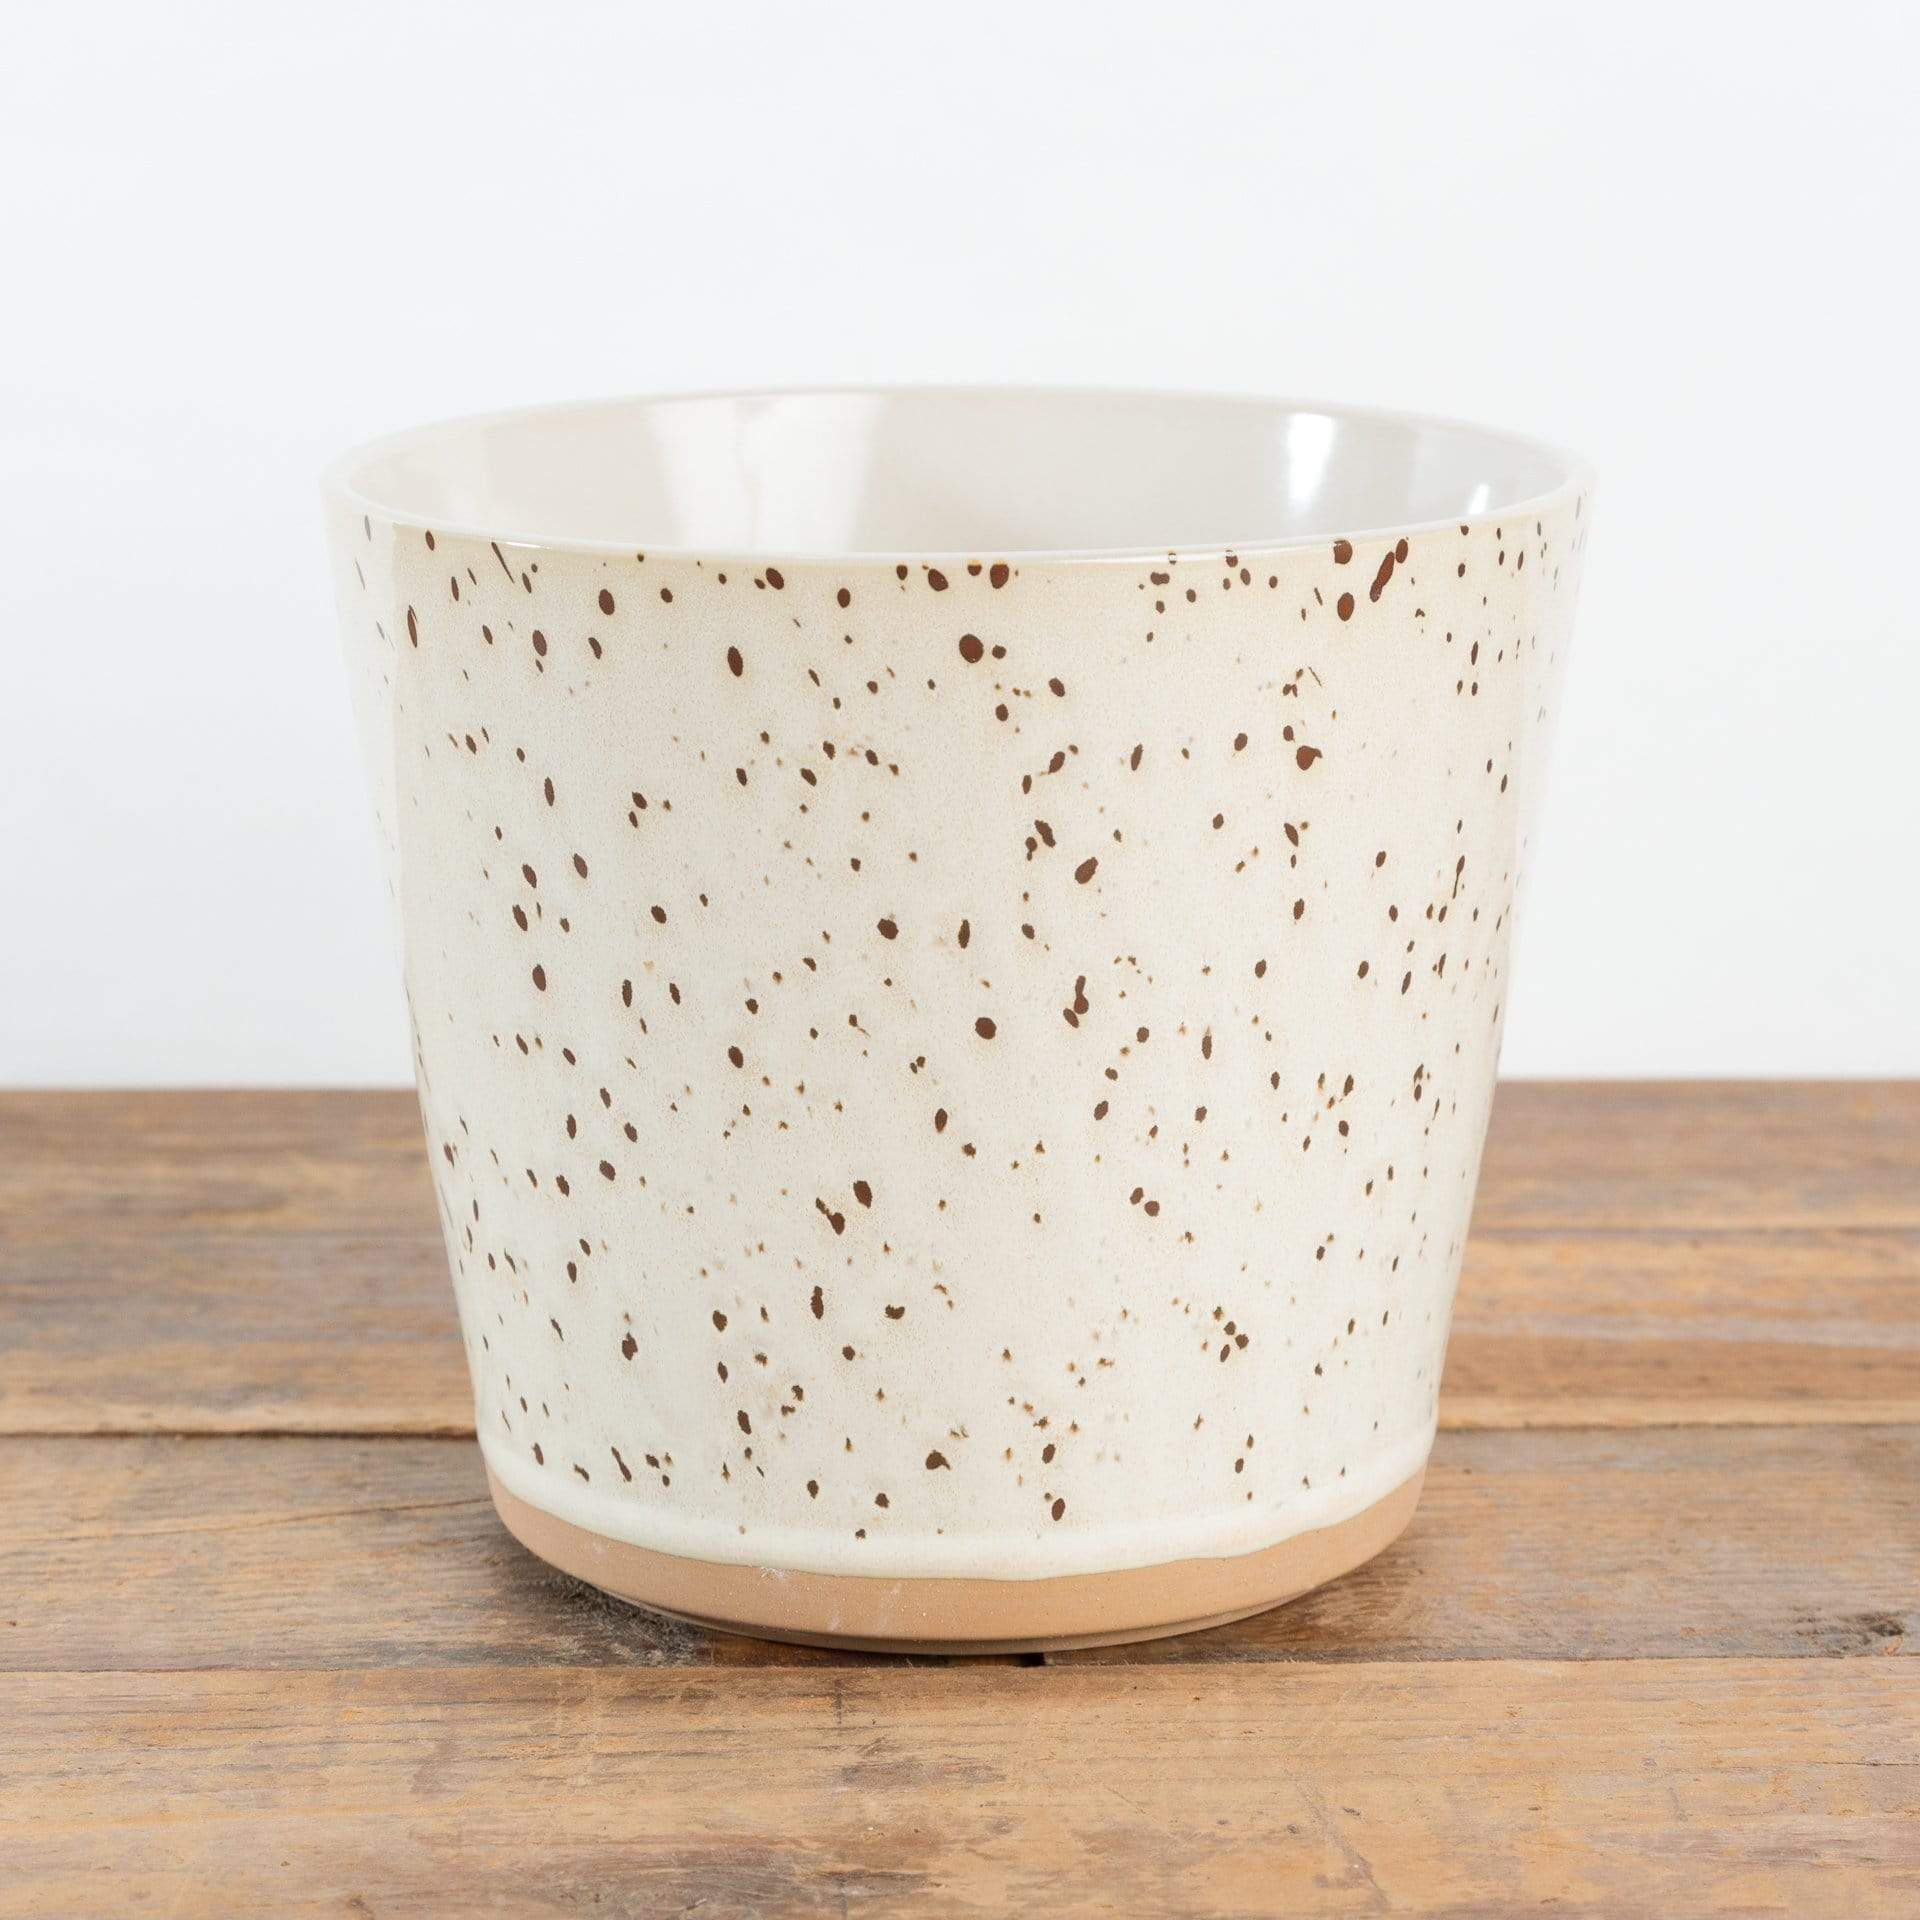 Speckled Egg planter - Urban Sprouts